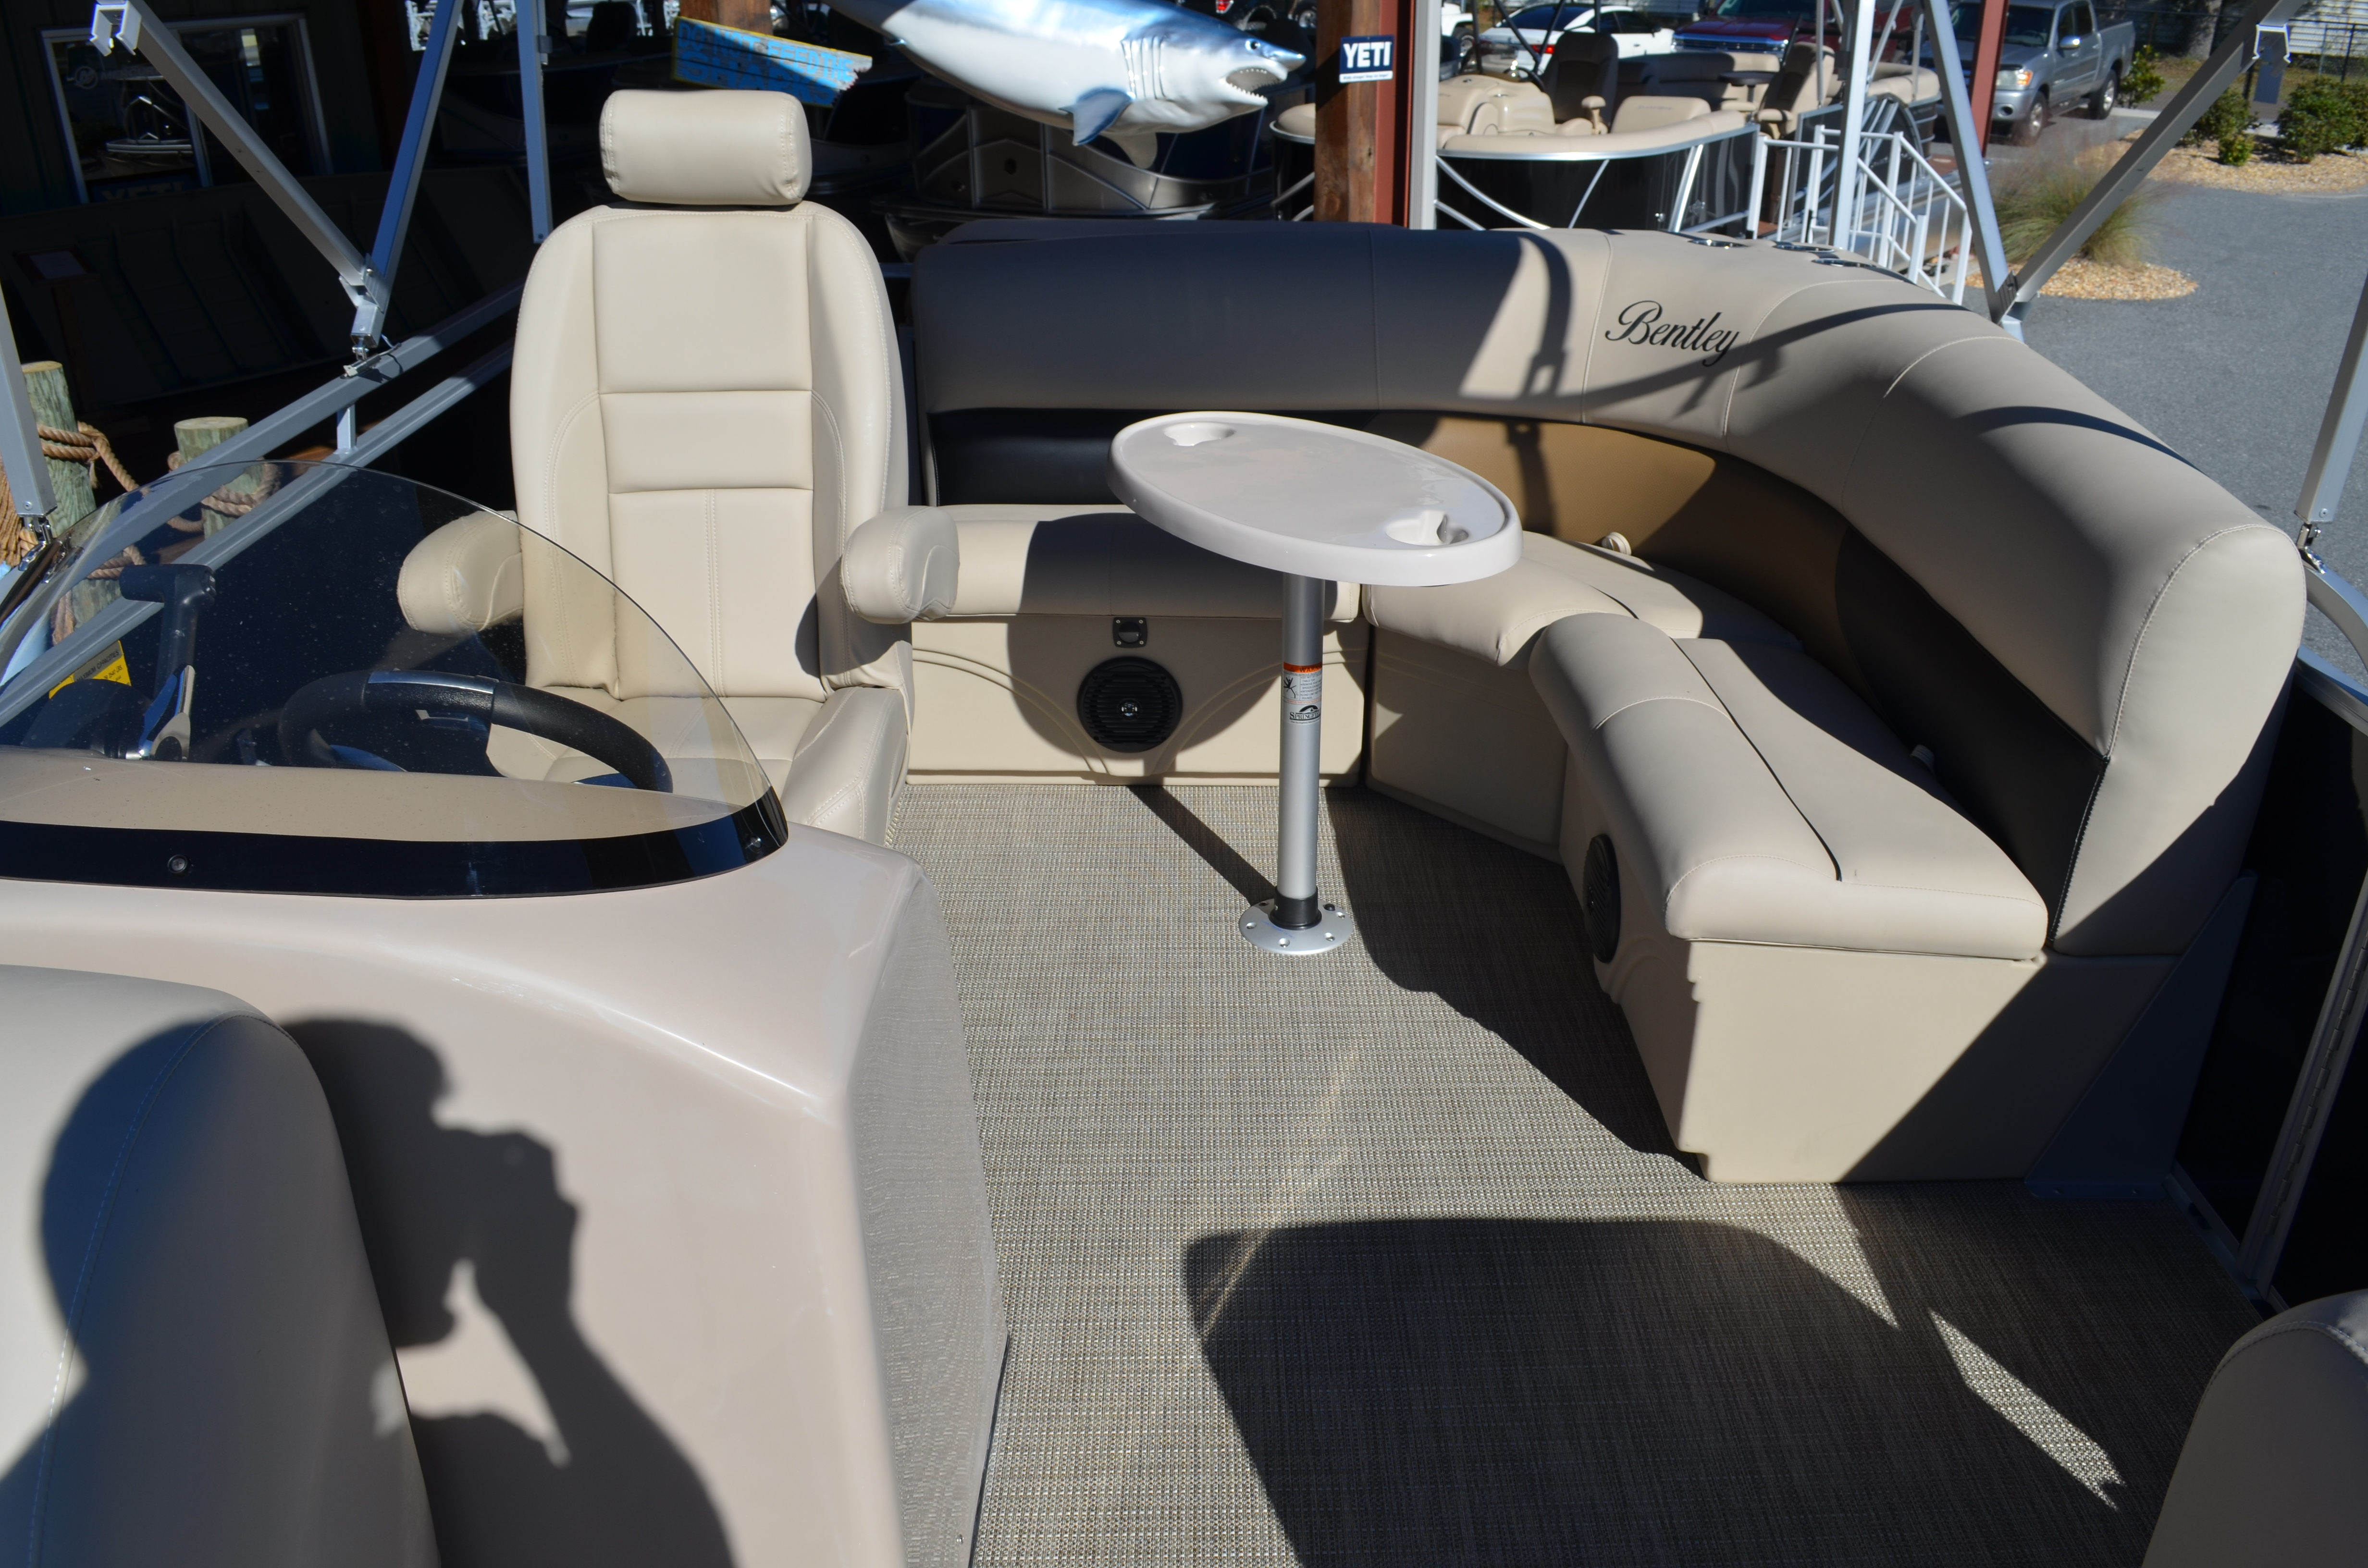 pontoons alloworigin aluminum for crestliner hurricane any can ky dealers you boats pontoon accesskeyid used disposition we sweetwater boat and deck special sale new aquapatio bentley order